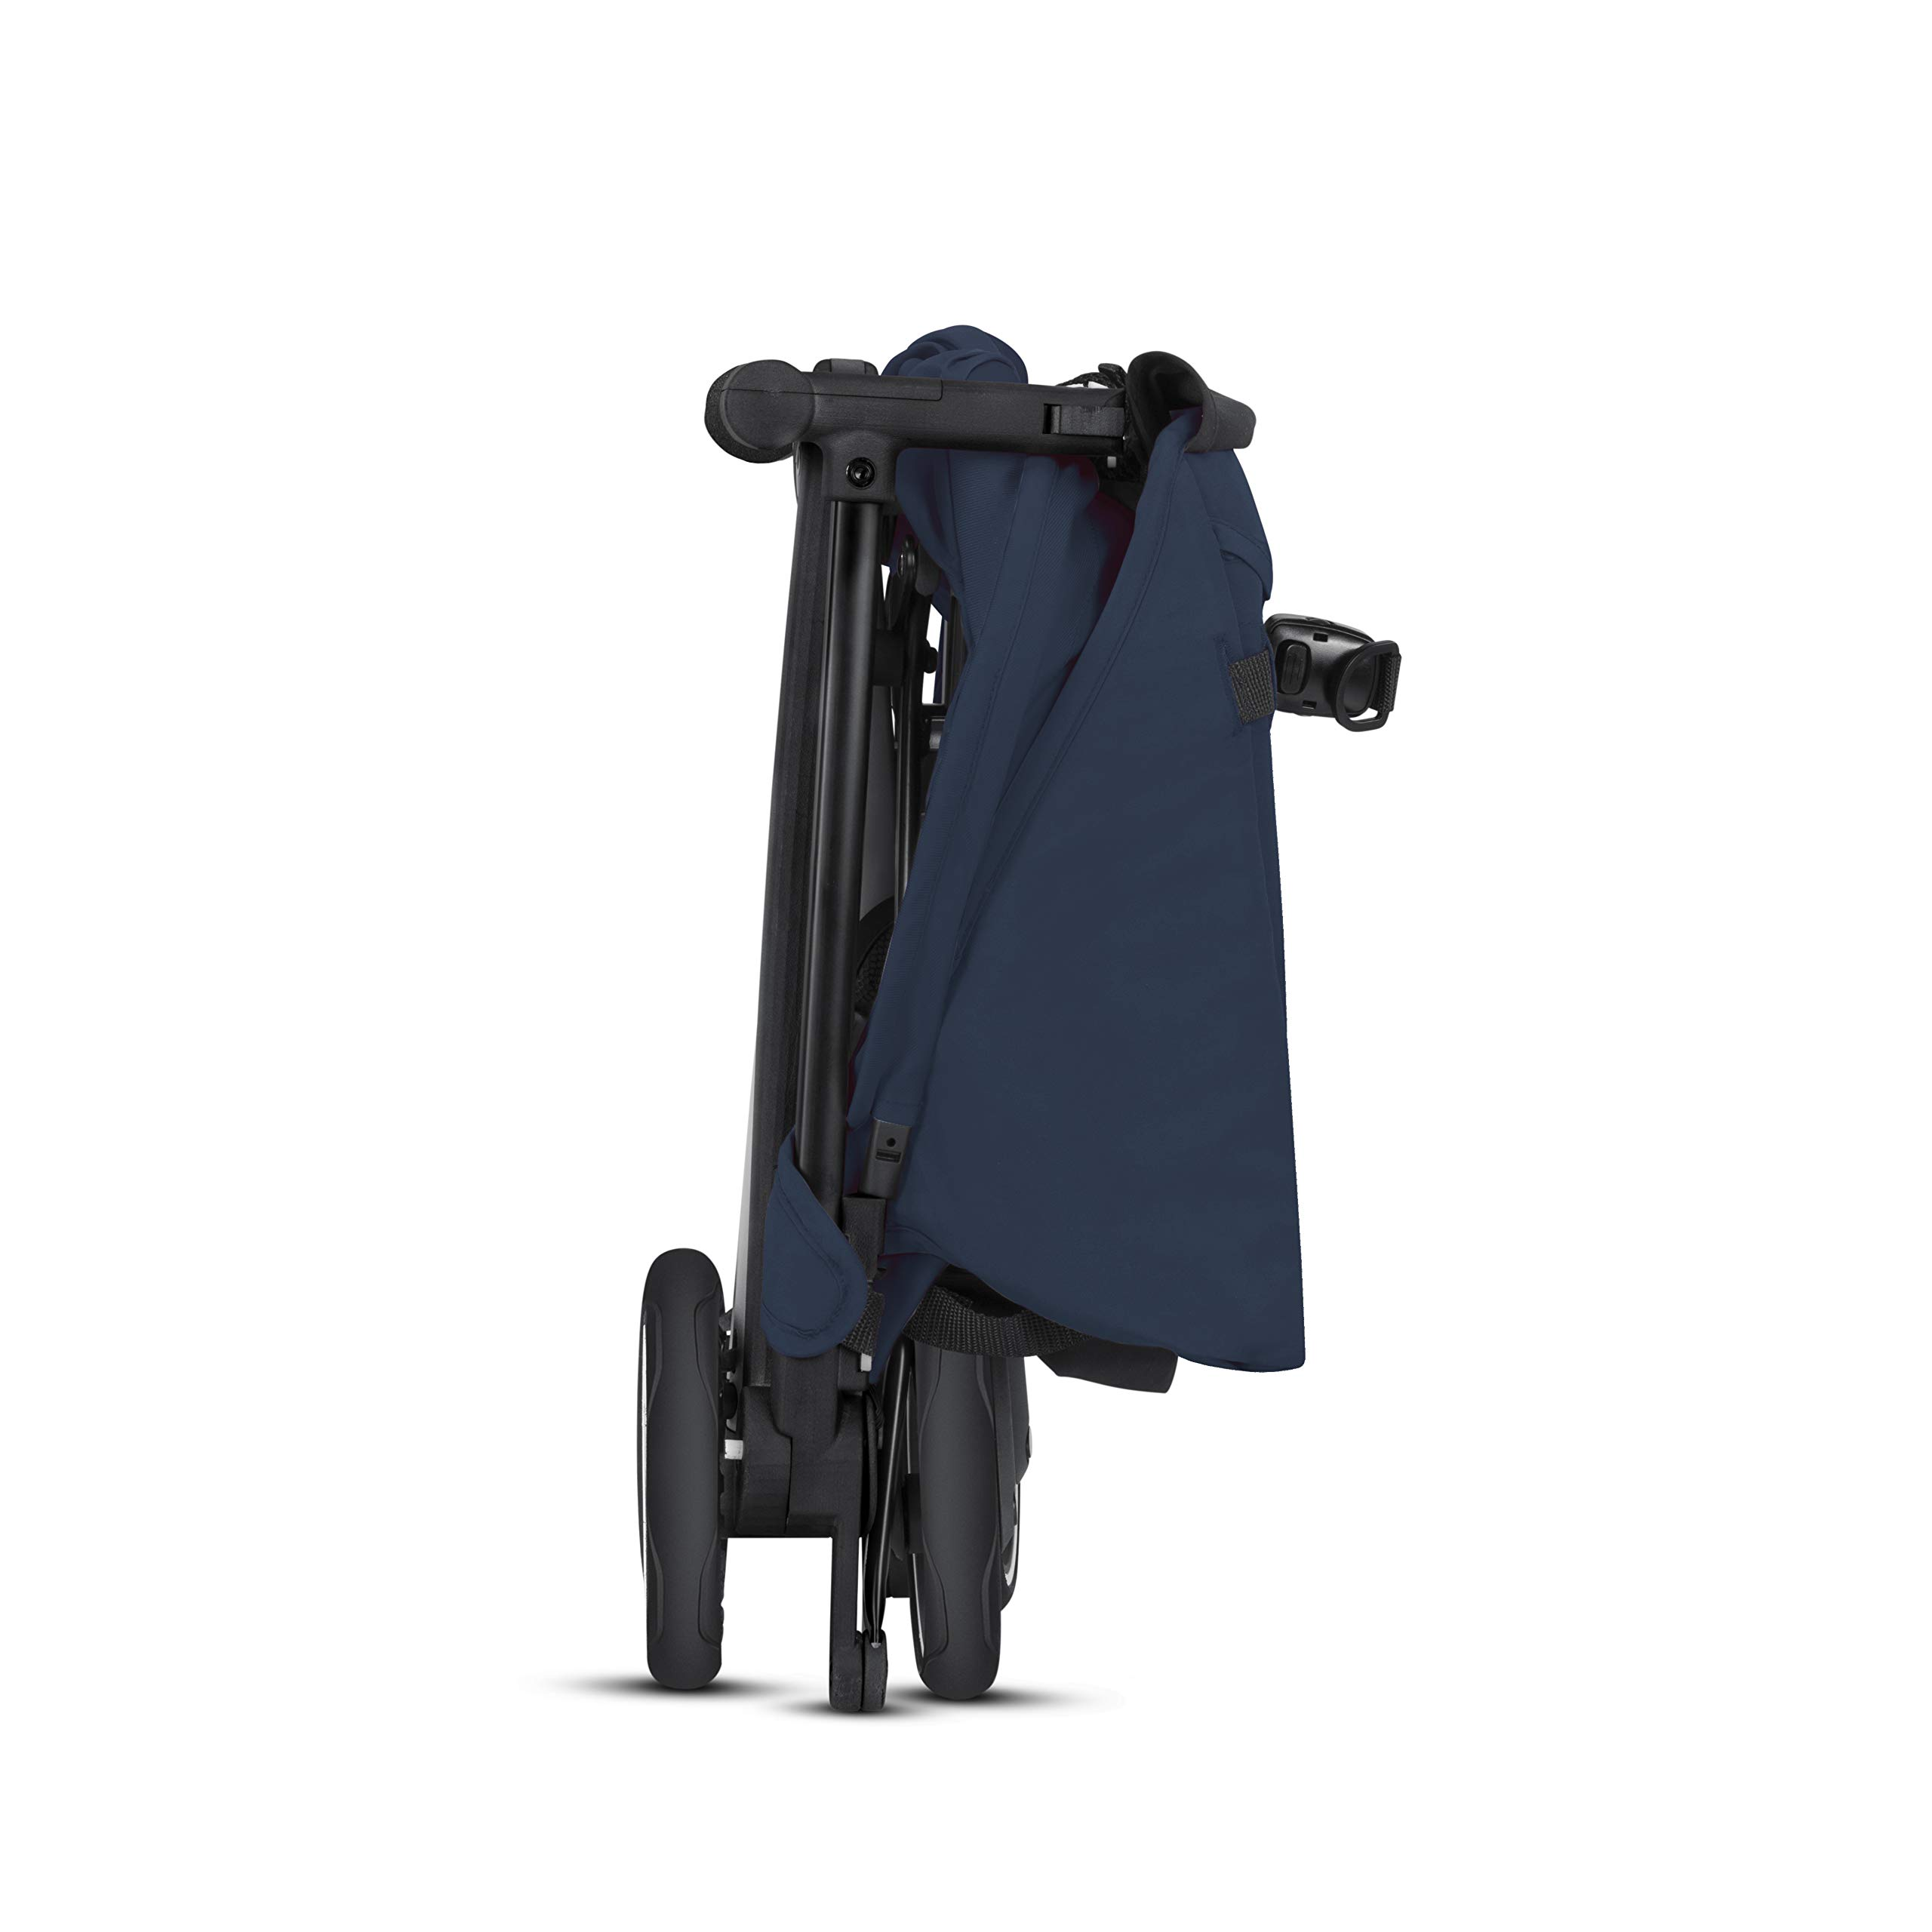 GB Pockit+ All-City Stroller - Night Blue by gb (Image #5)